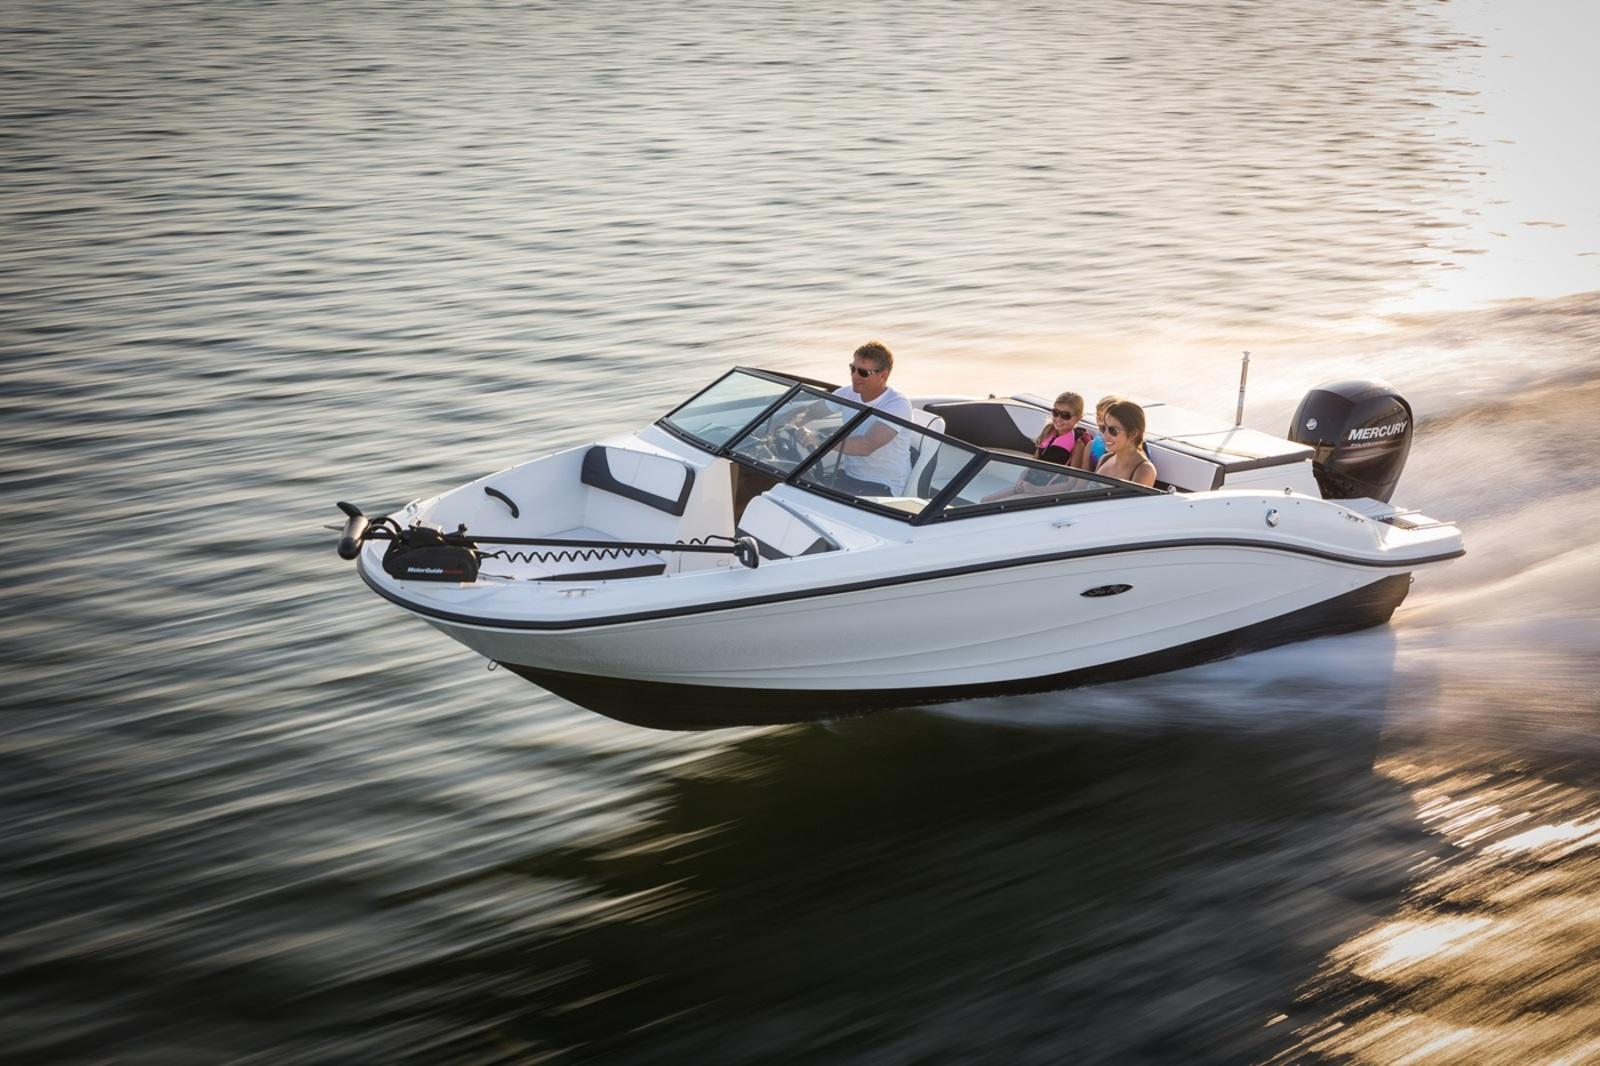 Sea Ray Boats: Models, Prices, Reviews, News, Specifications